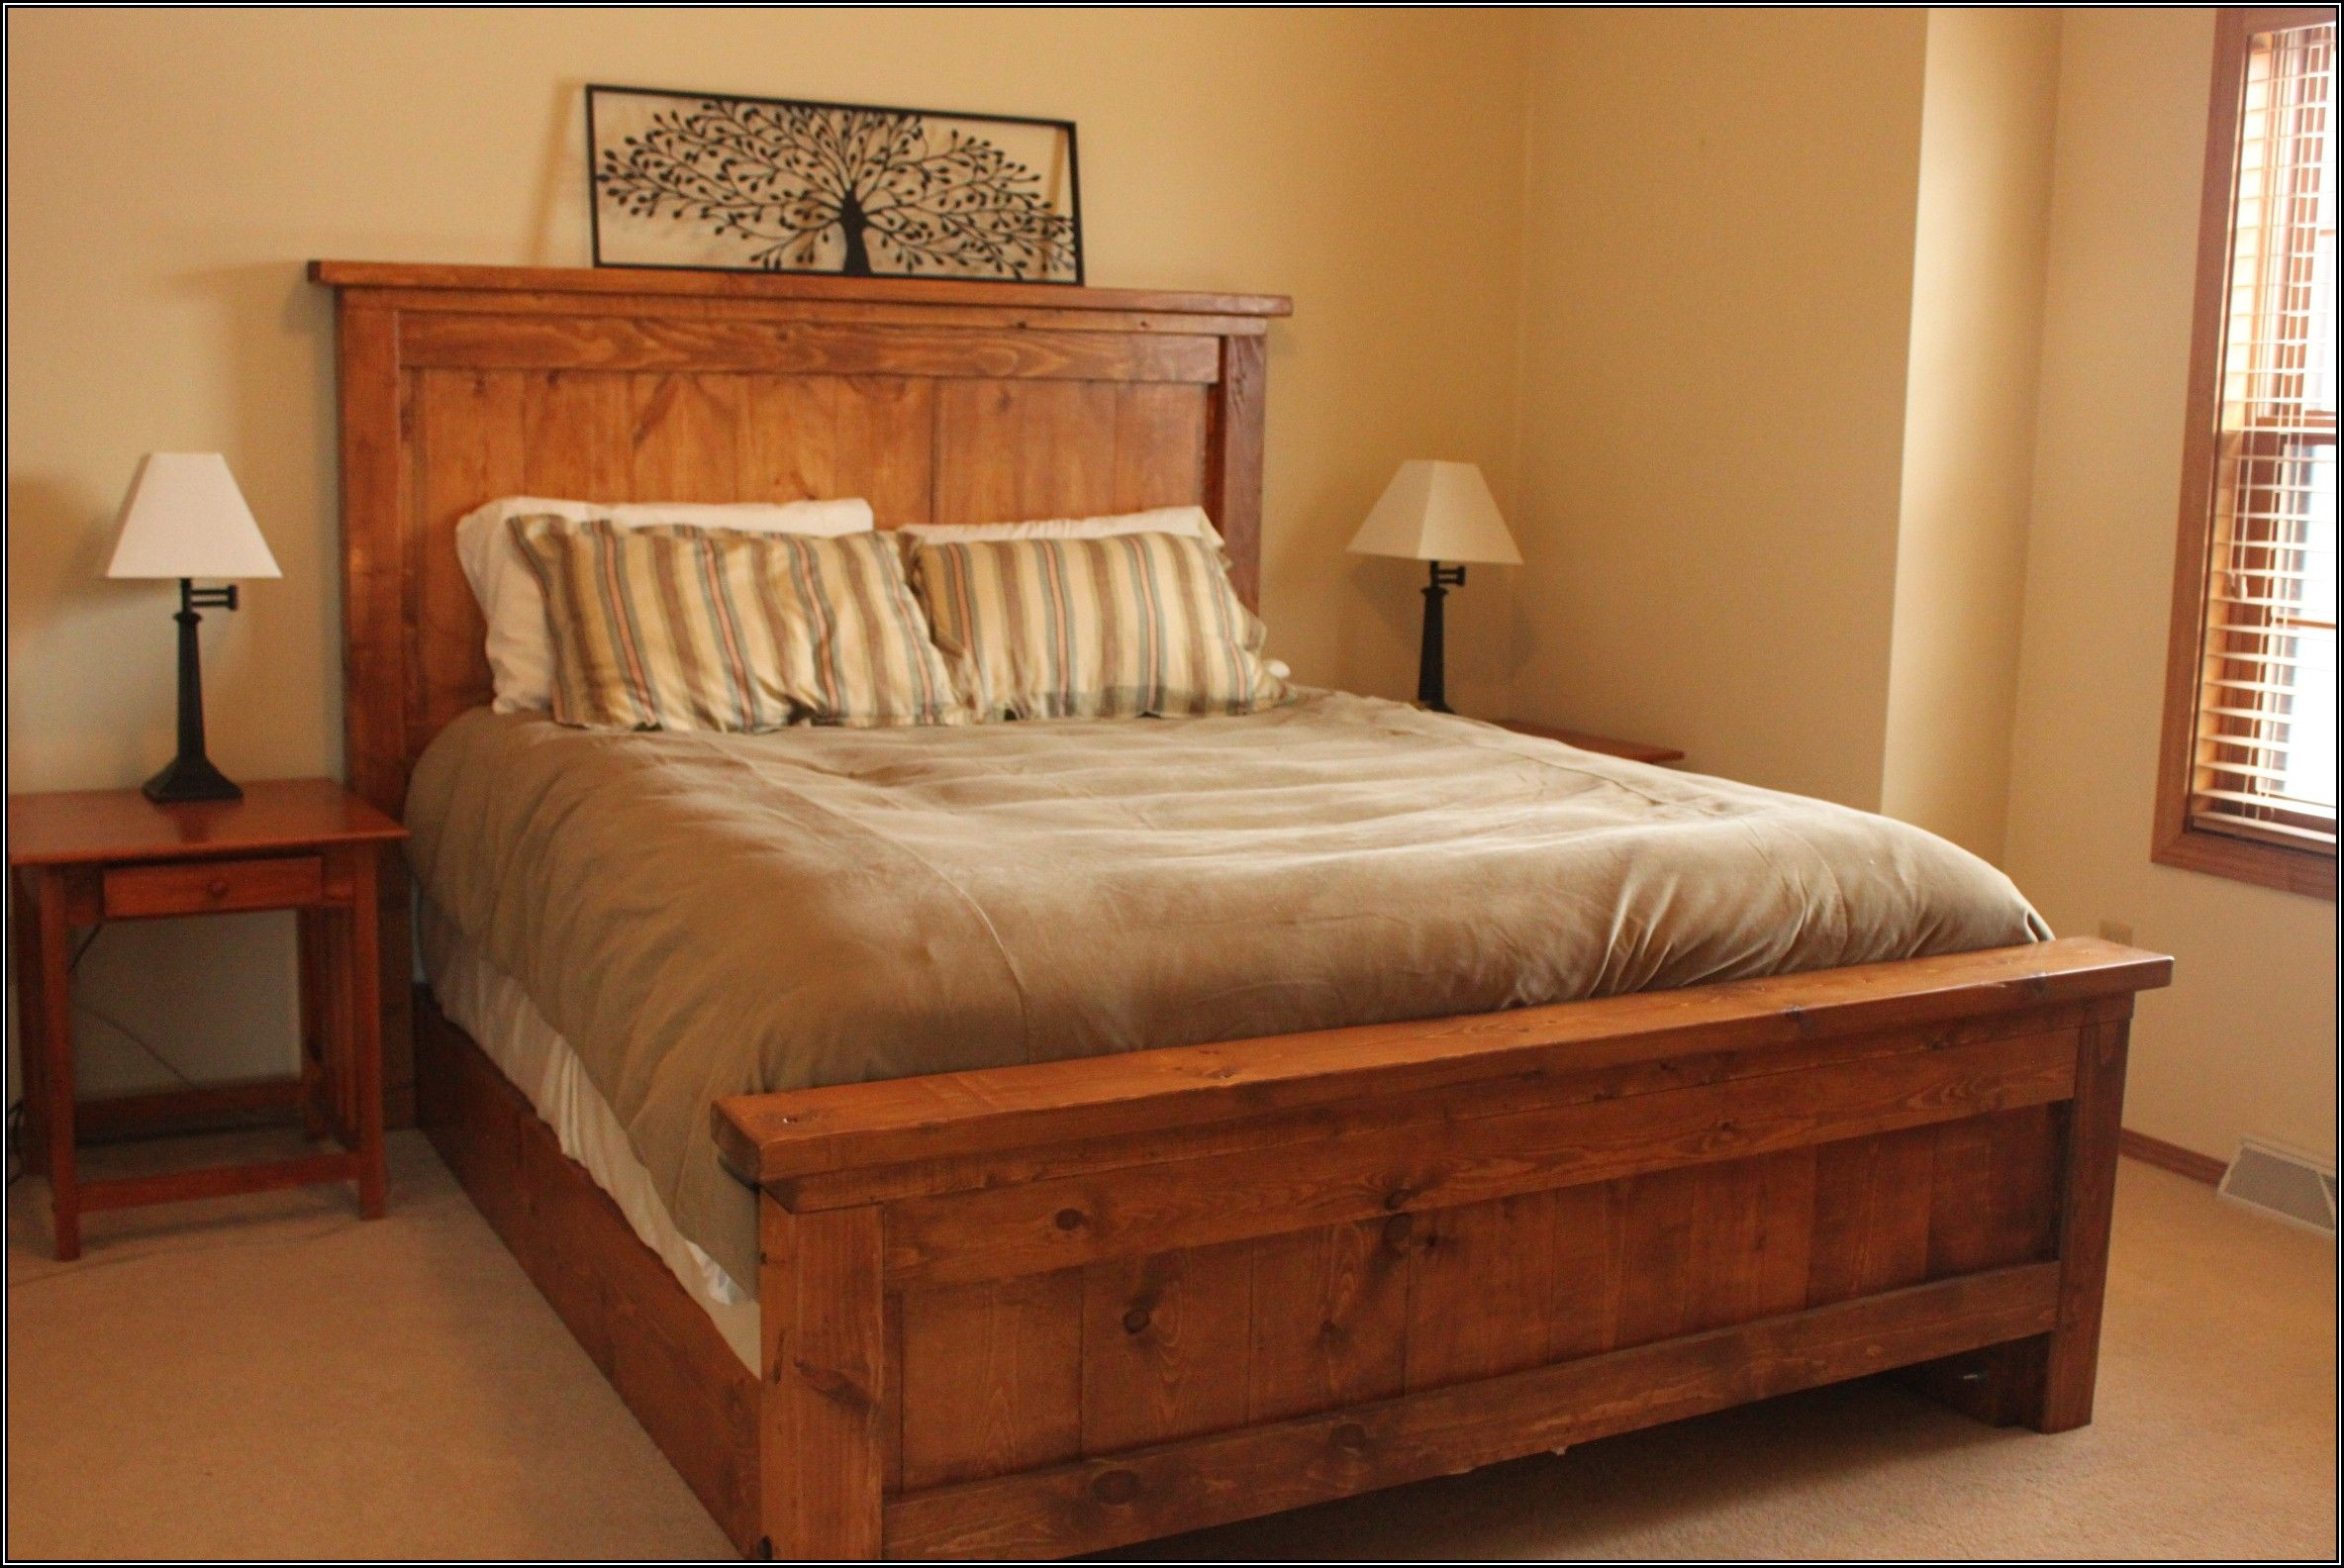 Elegant Full Size Wooden Bed Frame With Headboard Goodworksfurniture In 2020 Rustic Bed Frame Bed Frame And